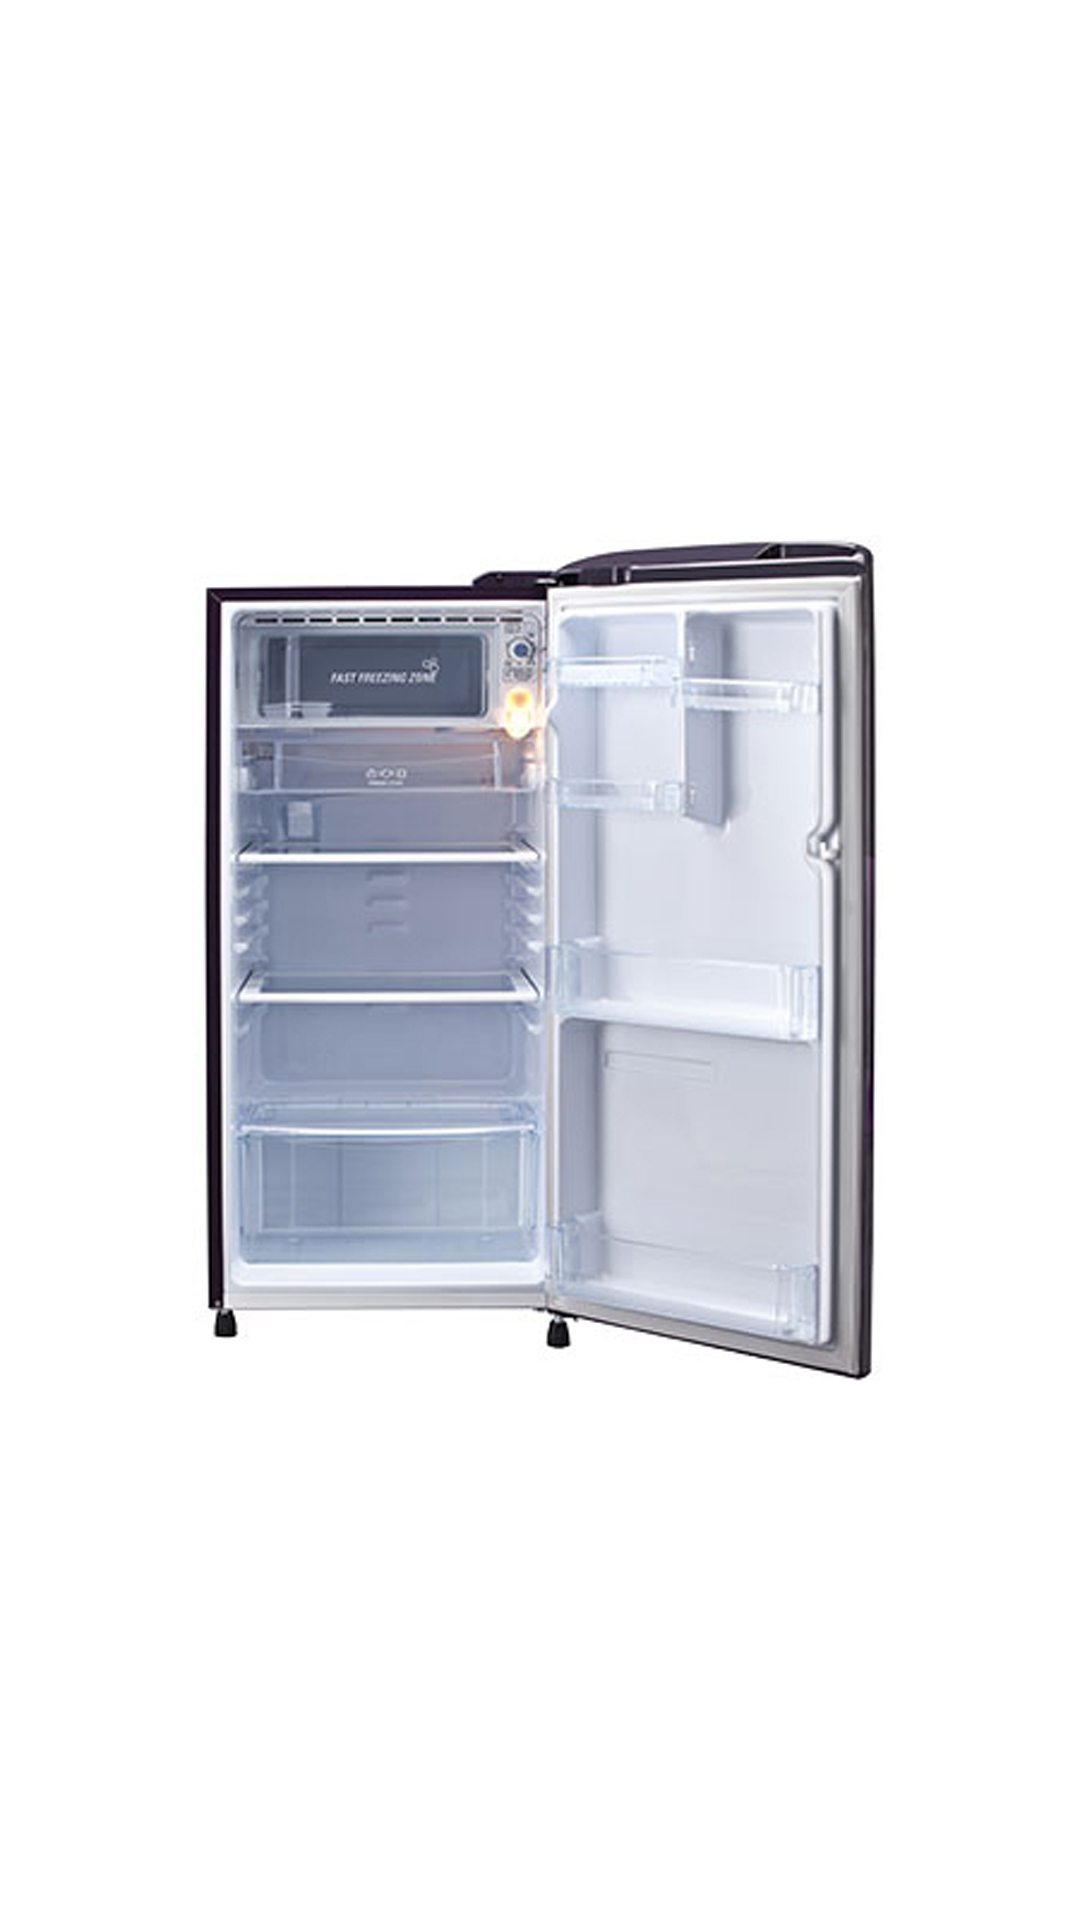 LG GL-B201APAN 190 L Single Door Refrigerator (Purple Aster)